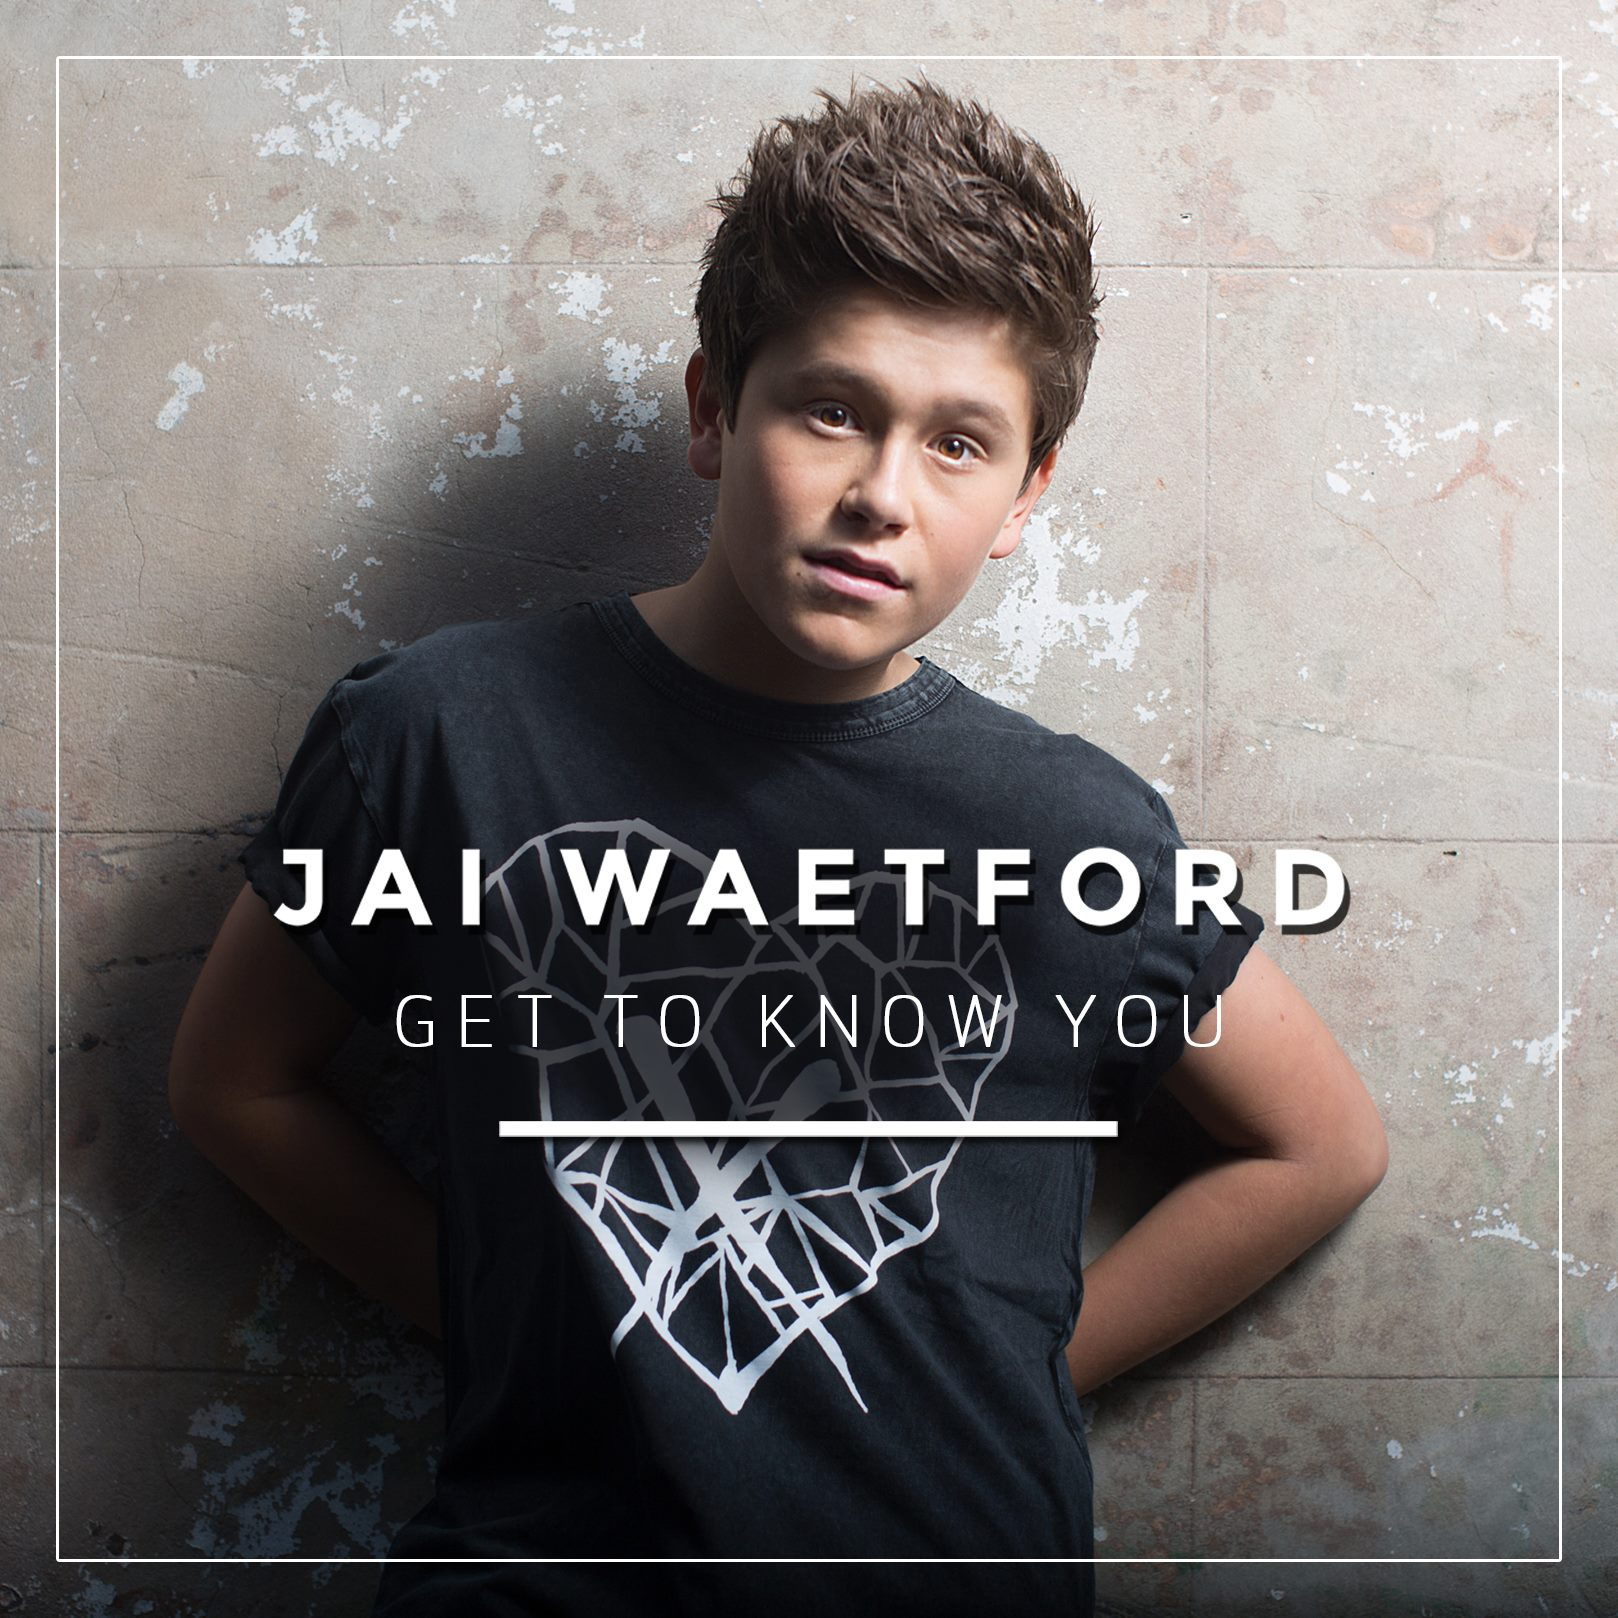 jai-waetford-get-to-know-you-76a0c00a-879c-4382-8a8c-4a4361599041.jpg